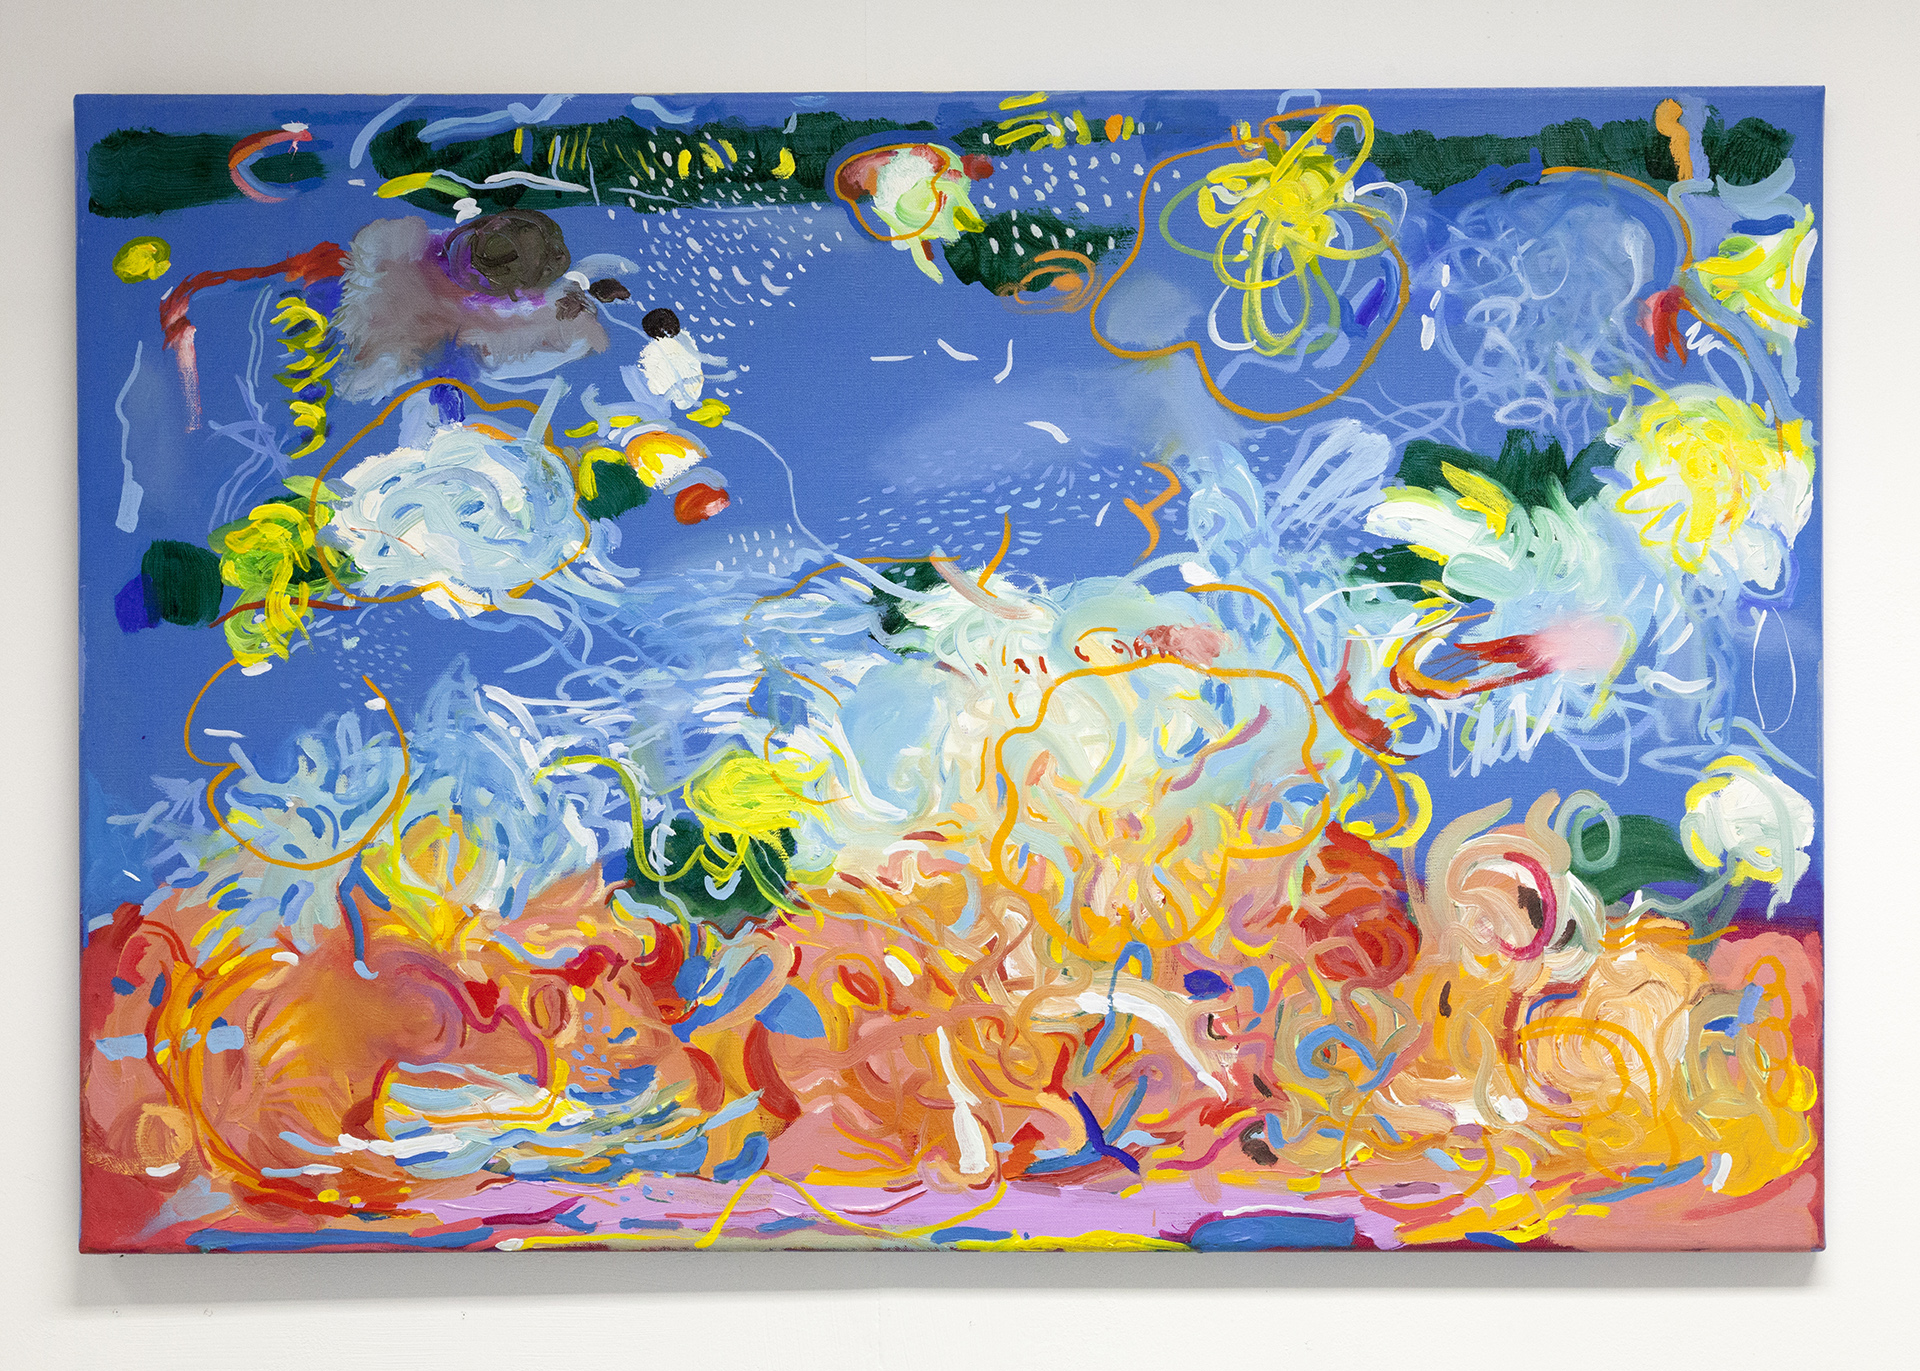 Labour I (after Petra Cortright), 2018